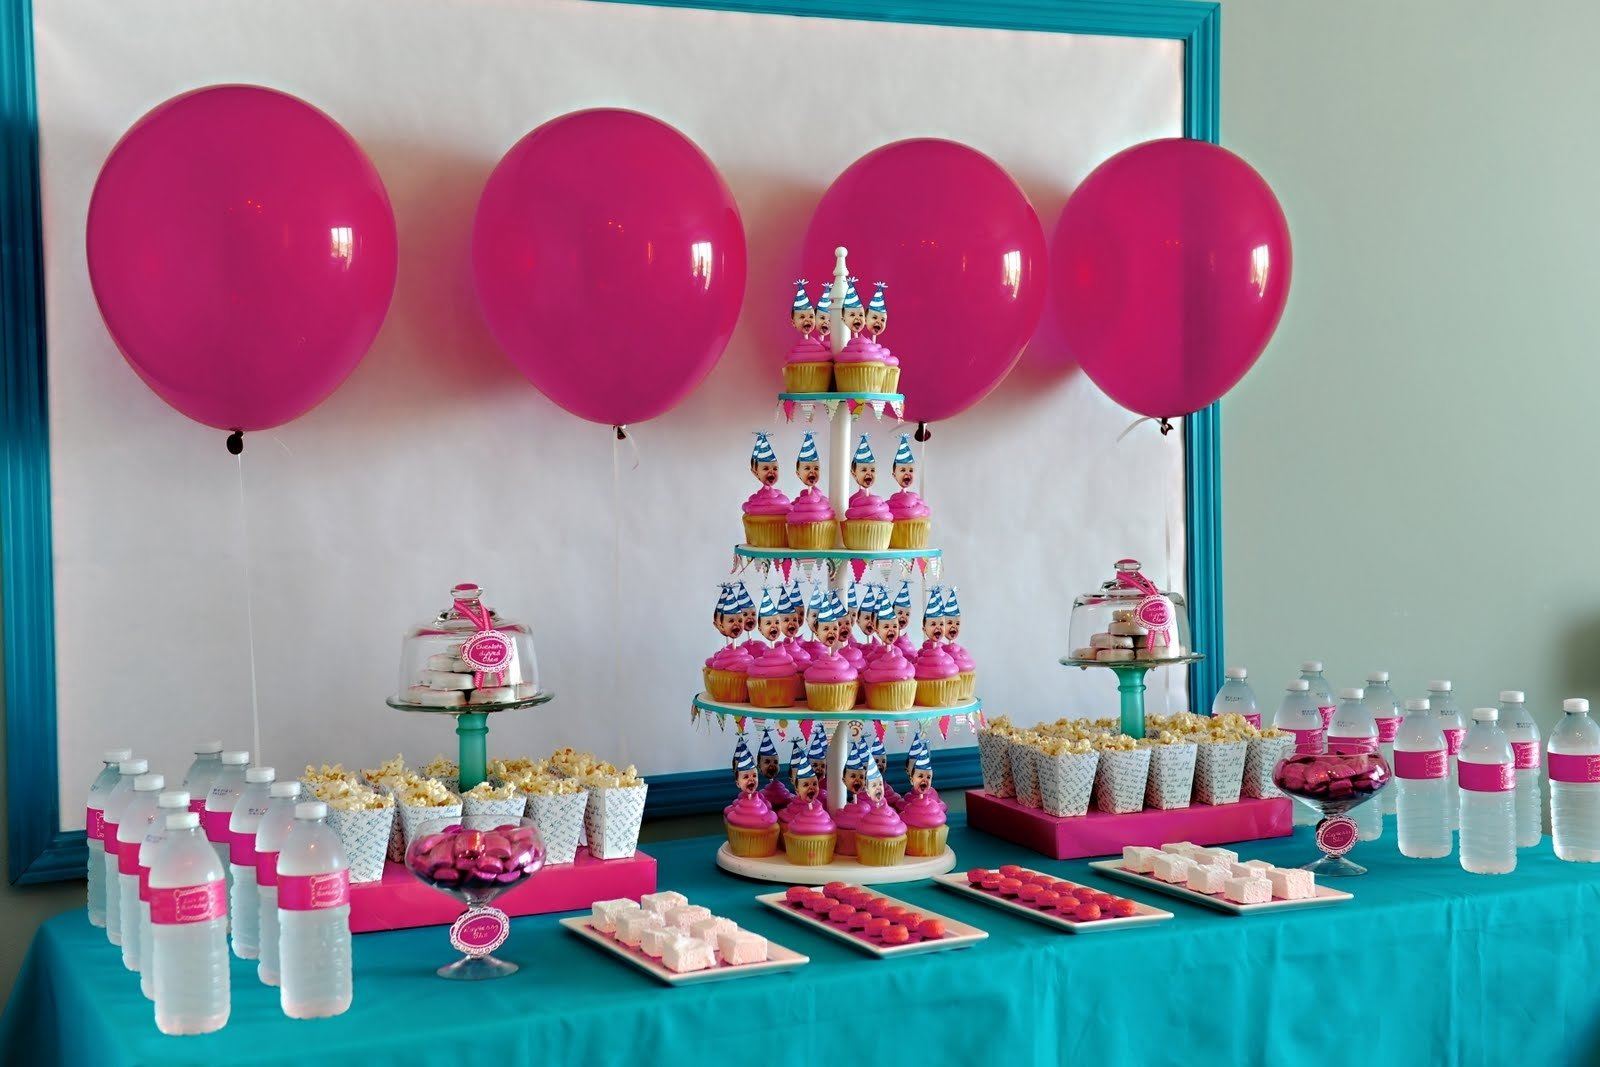 10 Wonderful Birthday Party Ideas For 8 Yr Old Girl Themes 6 Year Boy